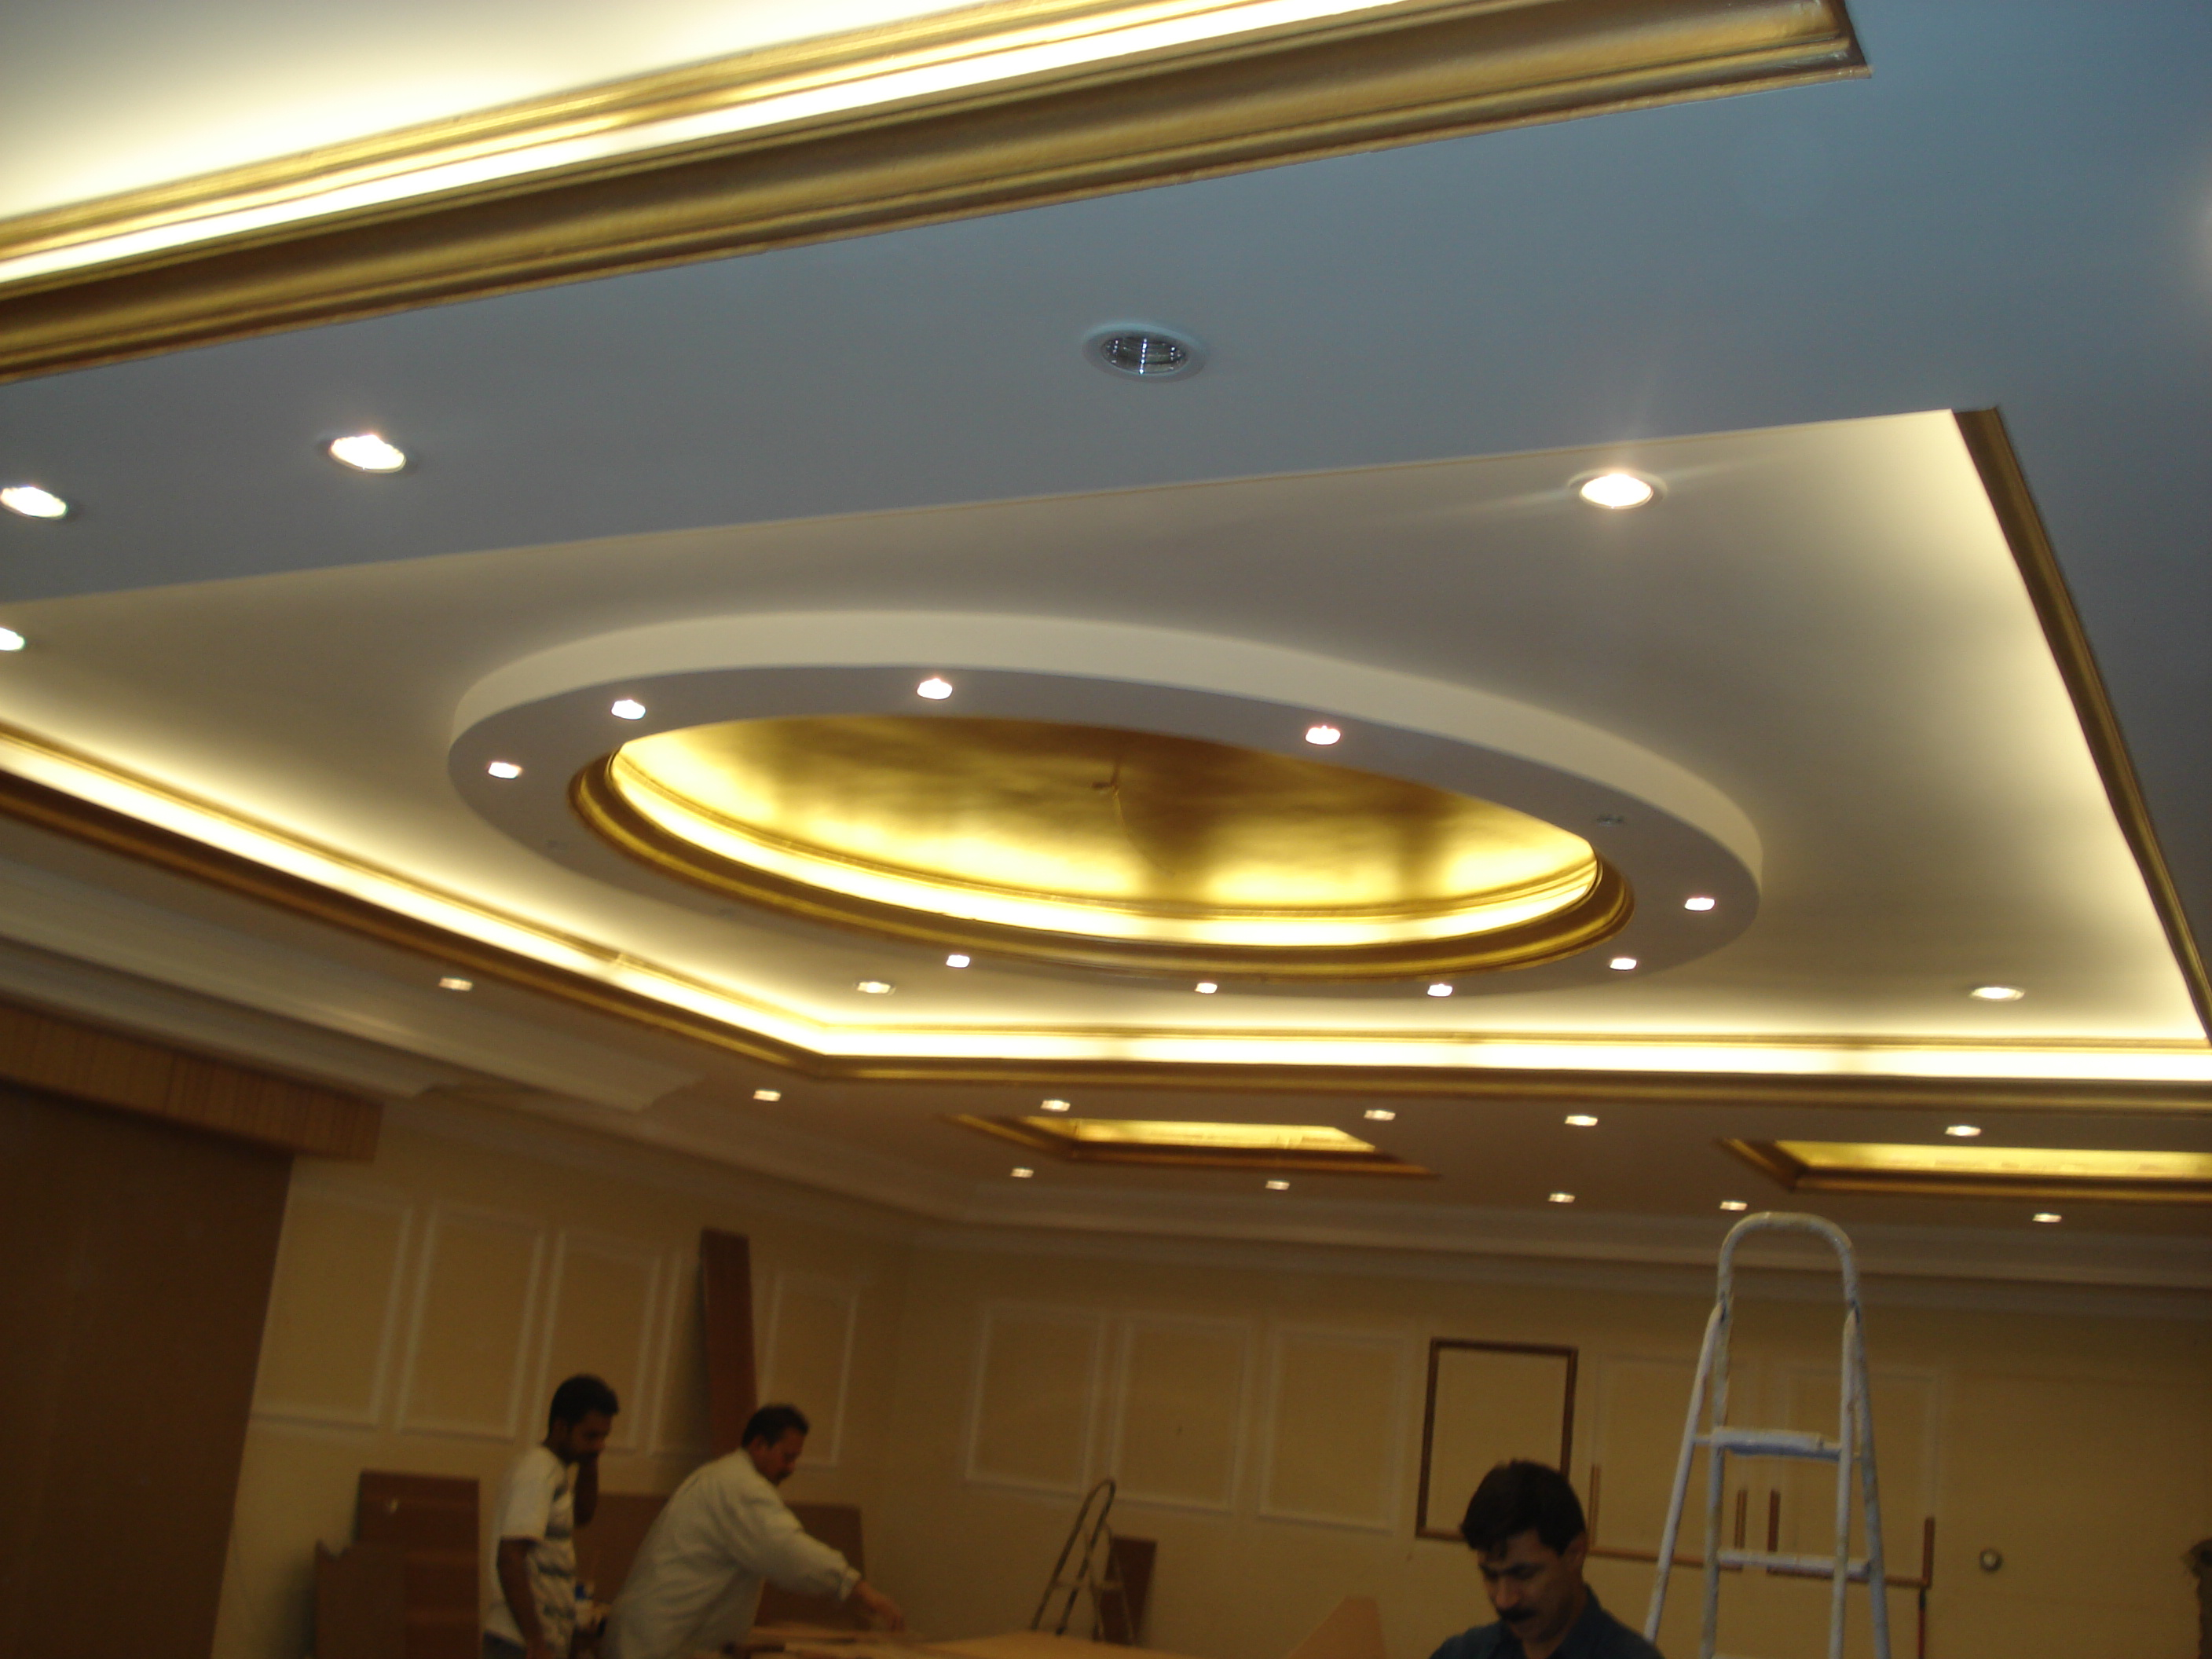 Ceiling Design Online If Ur Ceiling Is Not Fixed We Will Fix It For U Any Shape U Like